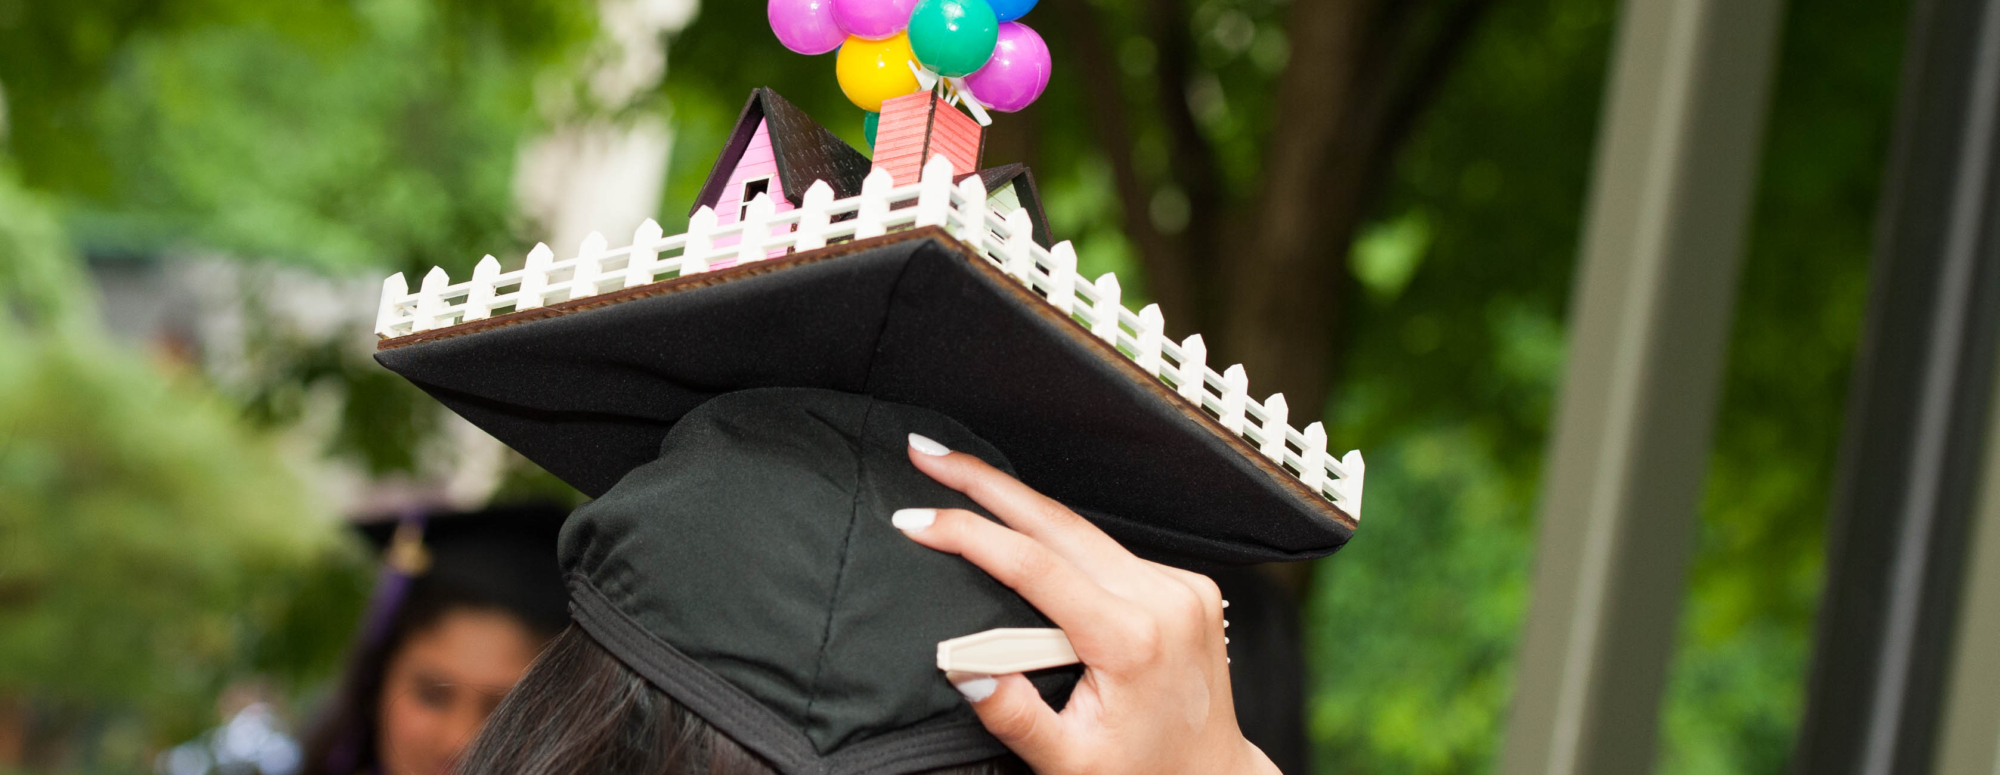 Close up of a student's mortar board cap with structure